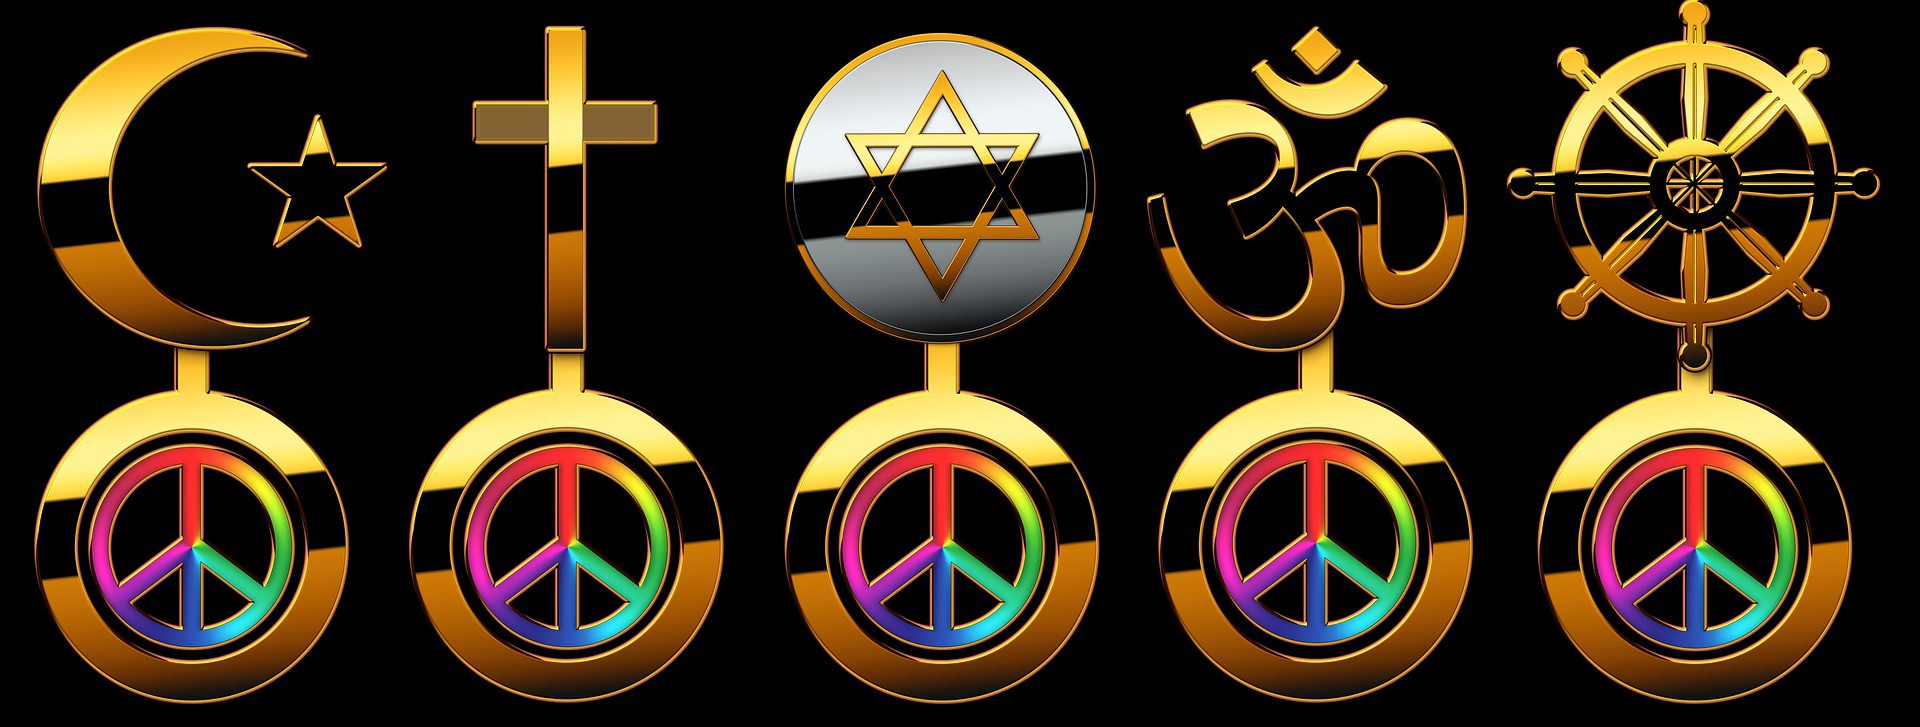 Religious symbols of Christianity, Islam and Hinduism are shown.